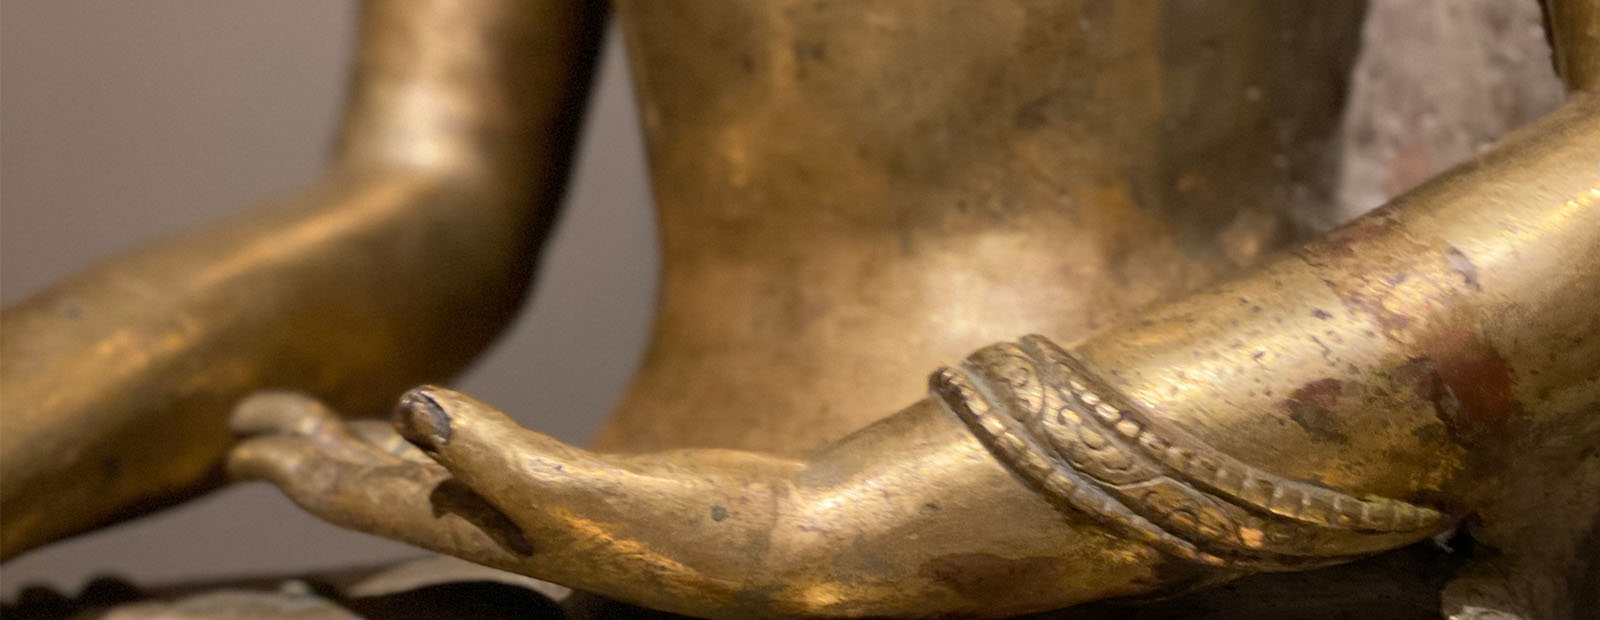 Hand of the Shakyamuni Buddha